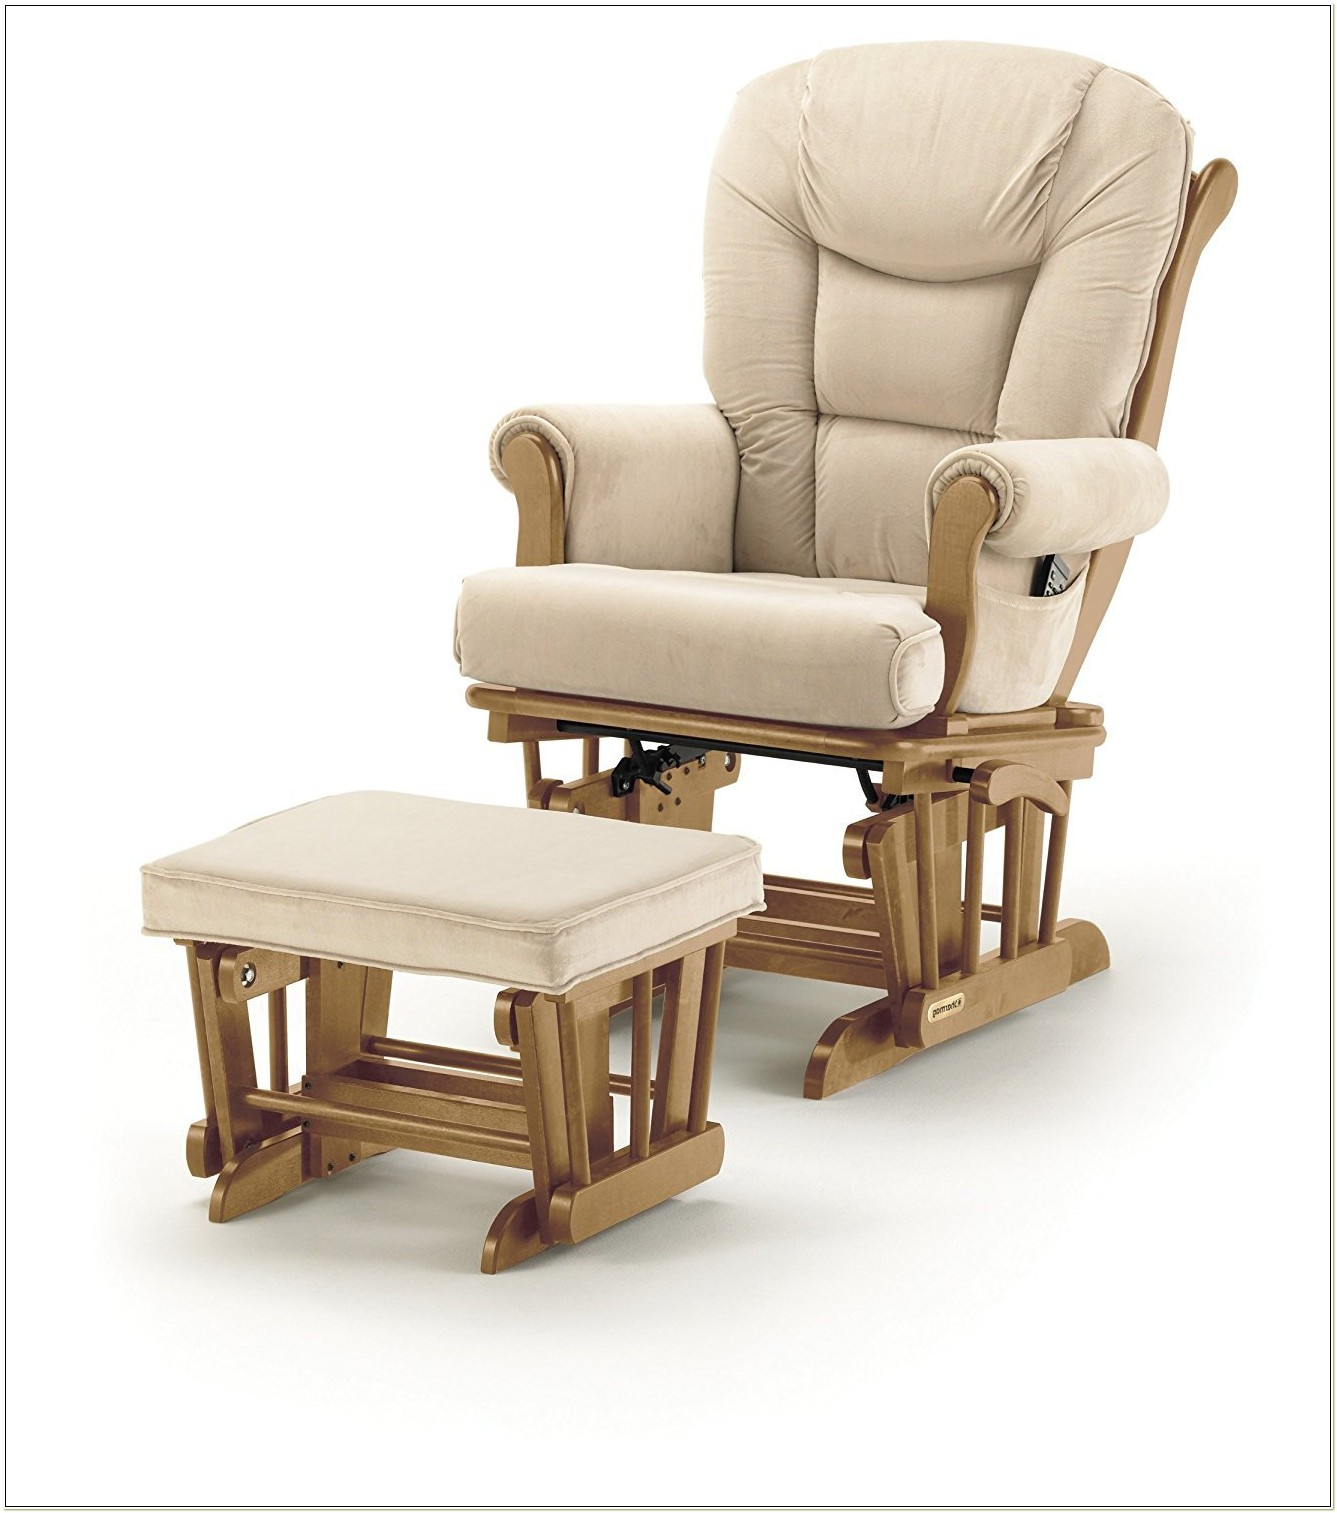 Shermag Glider Rocking Chair With Ottoman